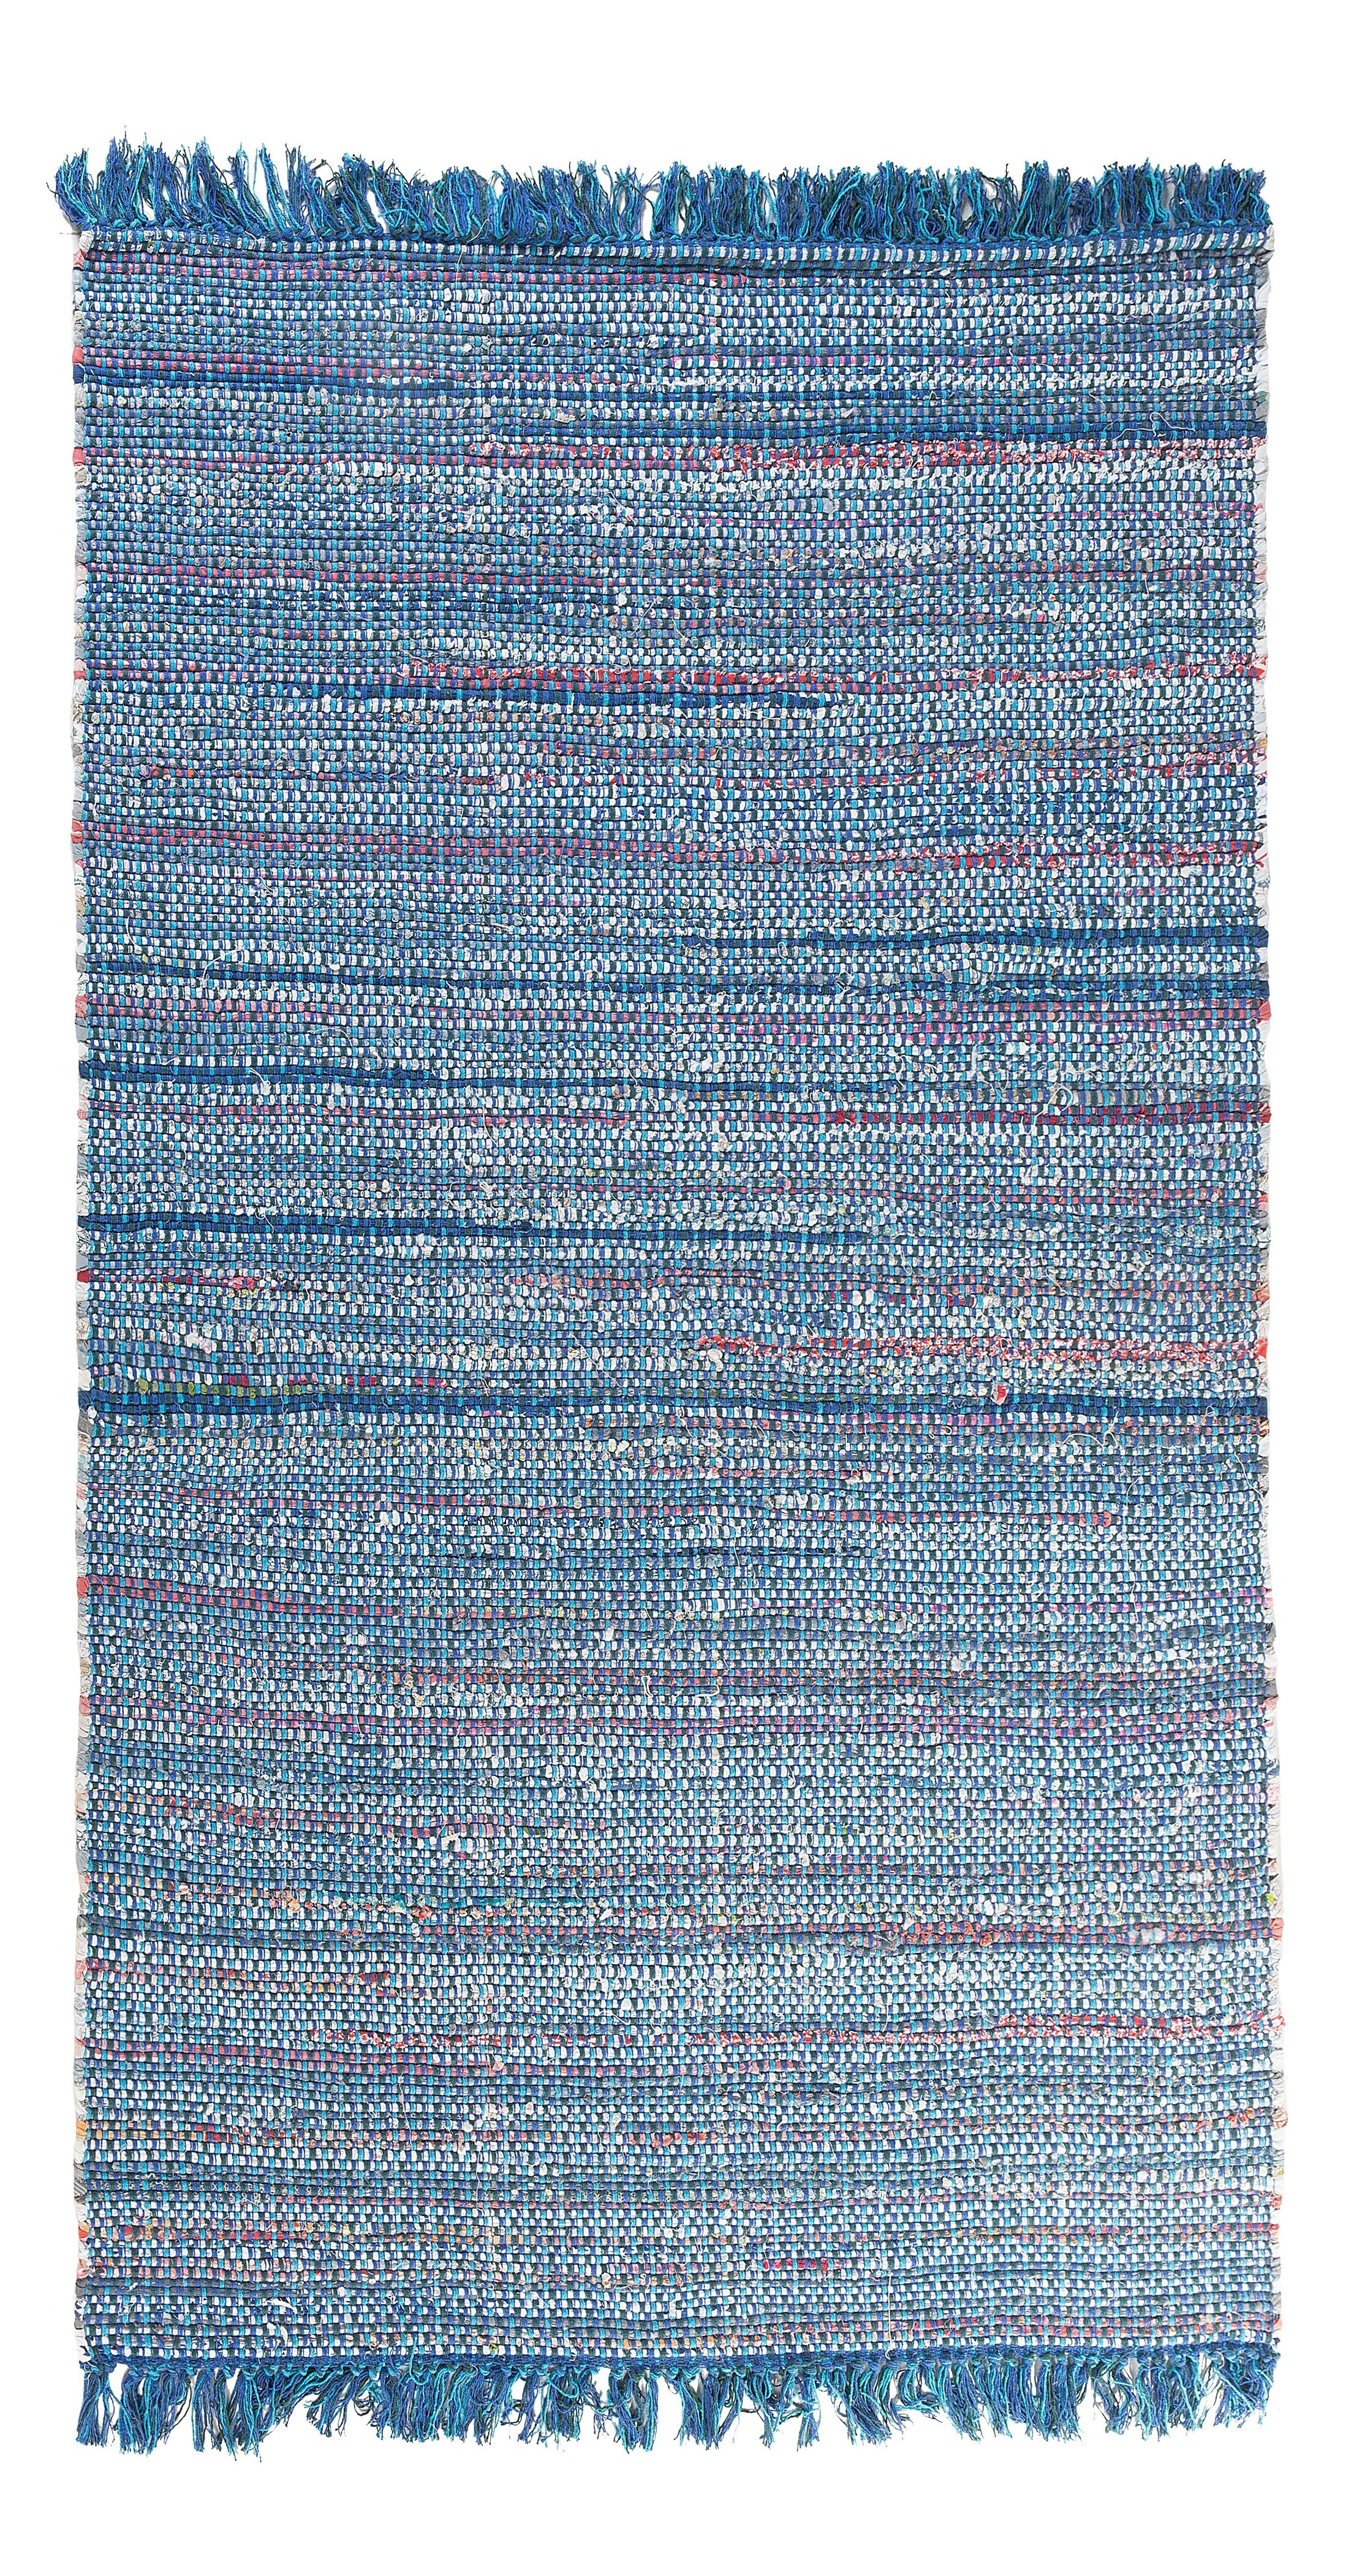 Besni Handwoven Blue Area Rug Size: 5'2